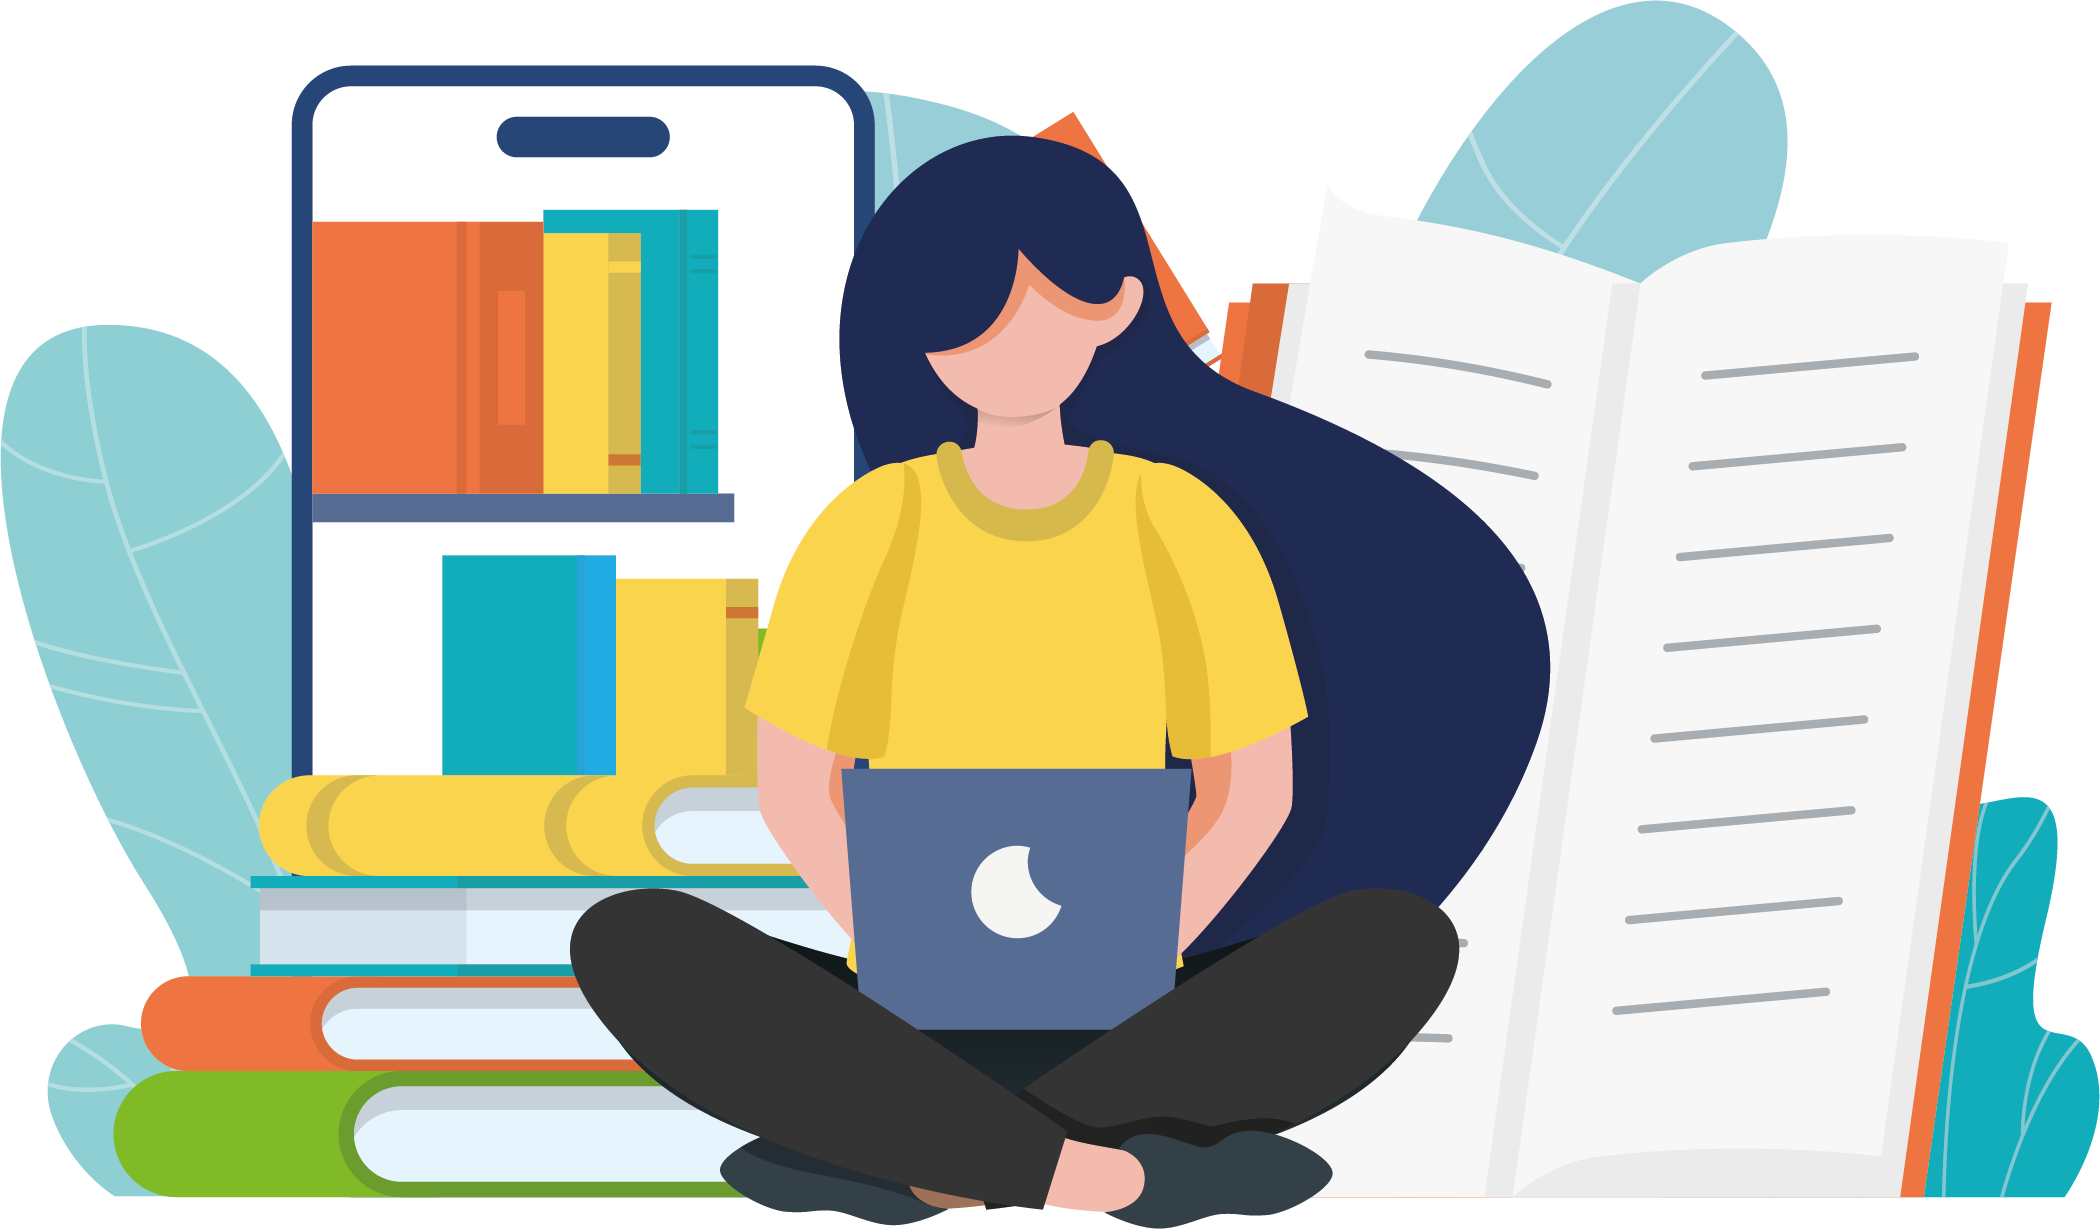 girl on a laptop in front of notebooks